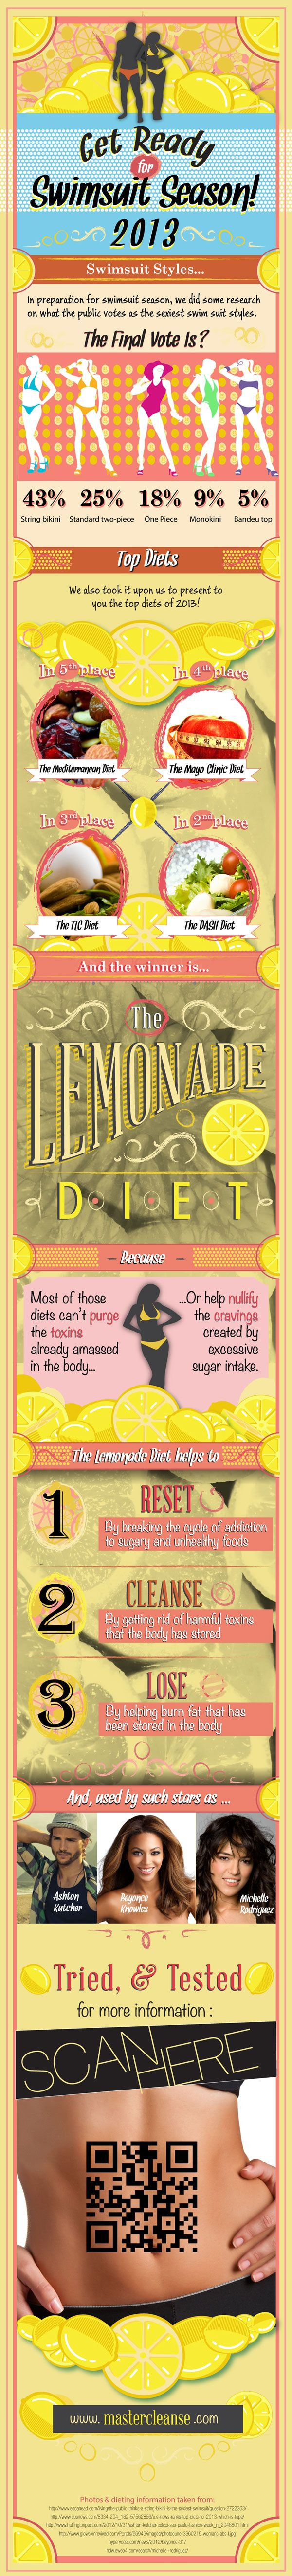 2013 Swimsuit Season Master Cleanse Infographic   The Master Cleanse Diet   Official Diet Reviews and weight loss Insights